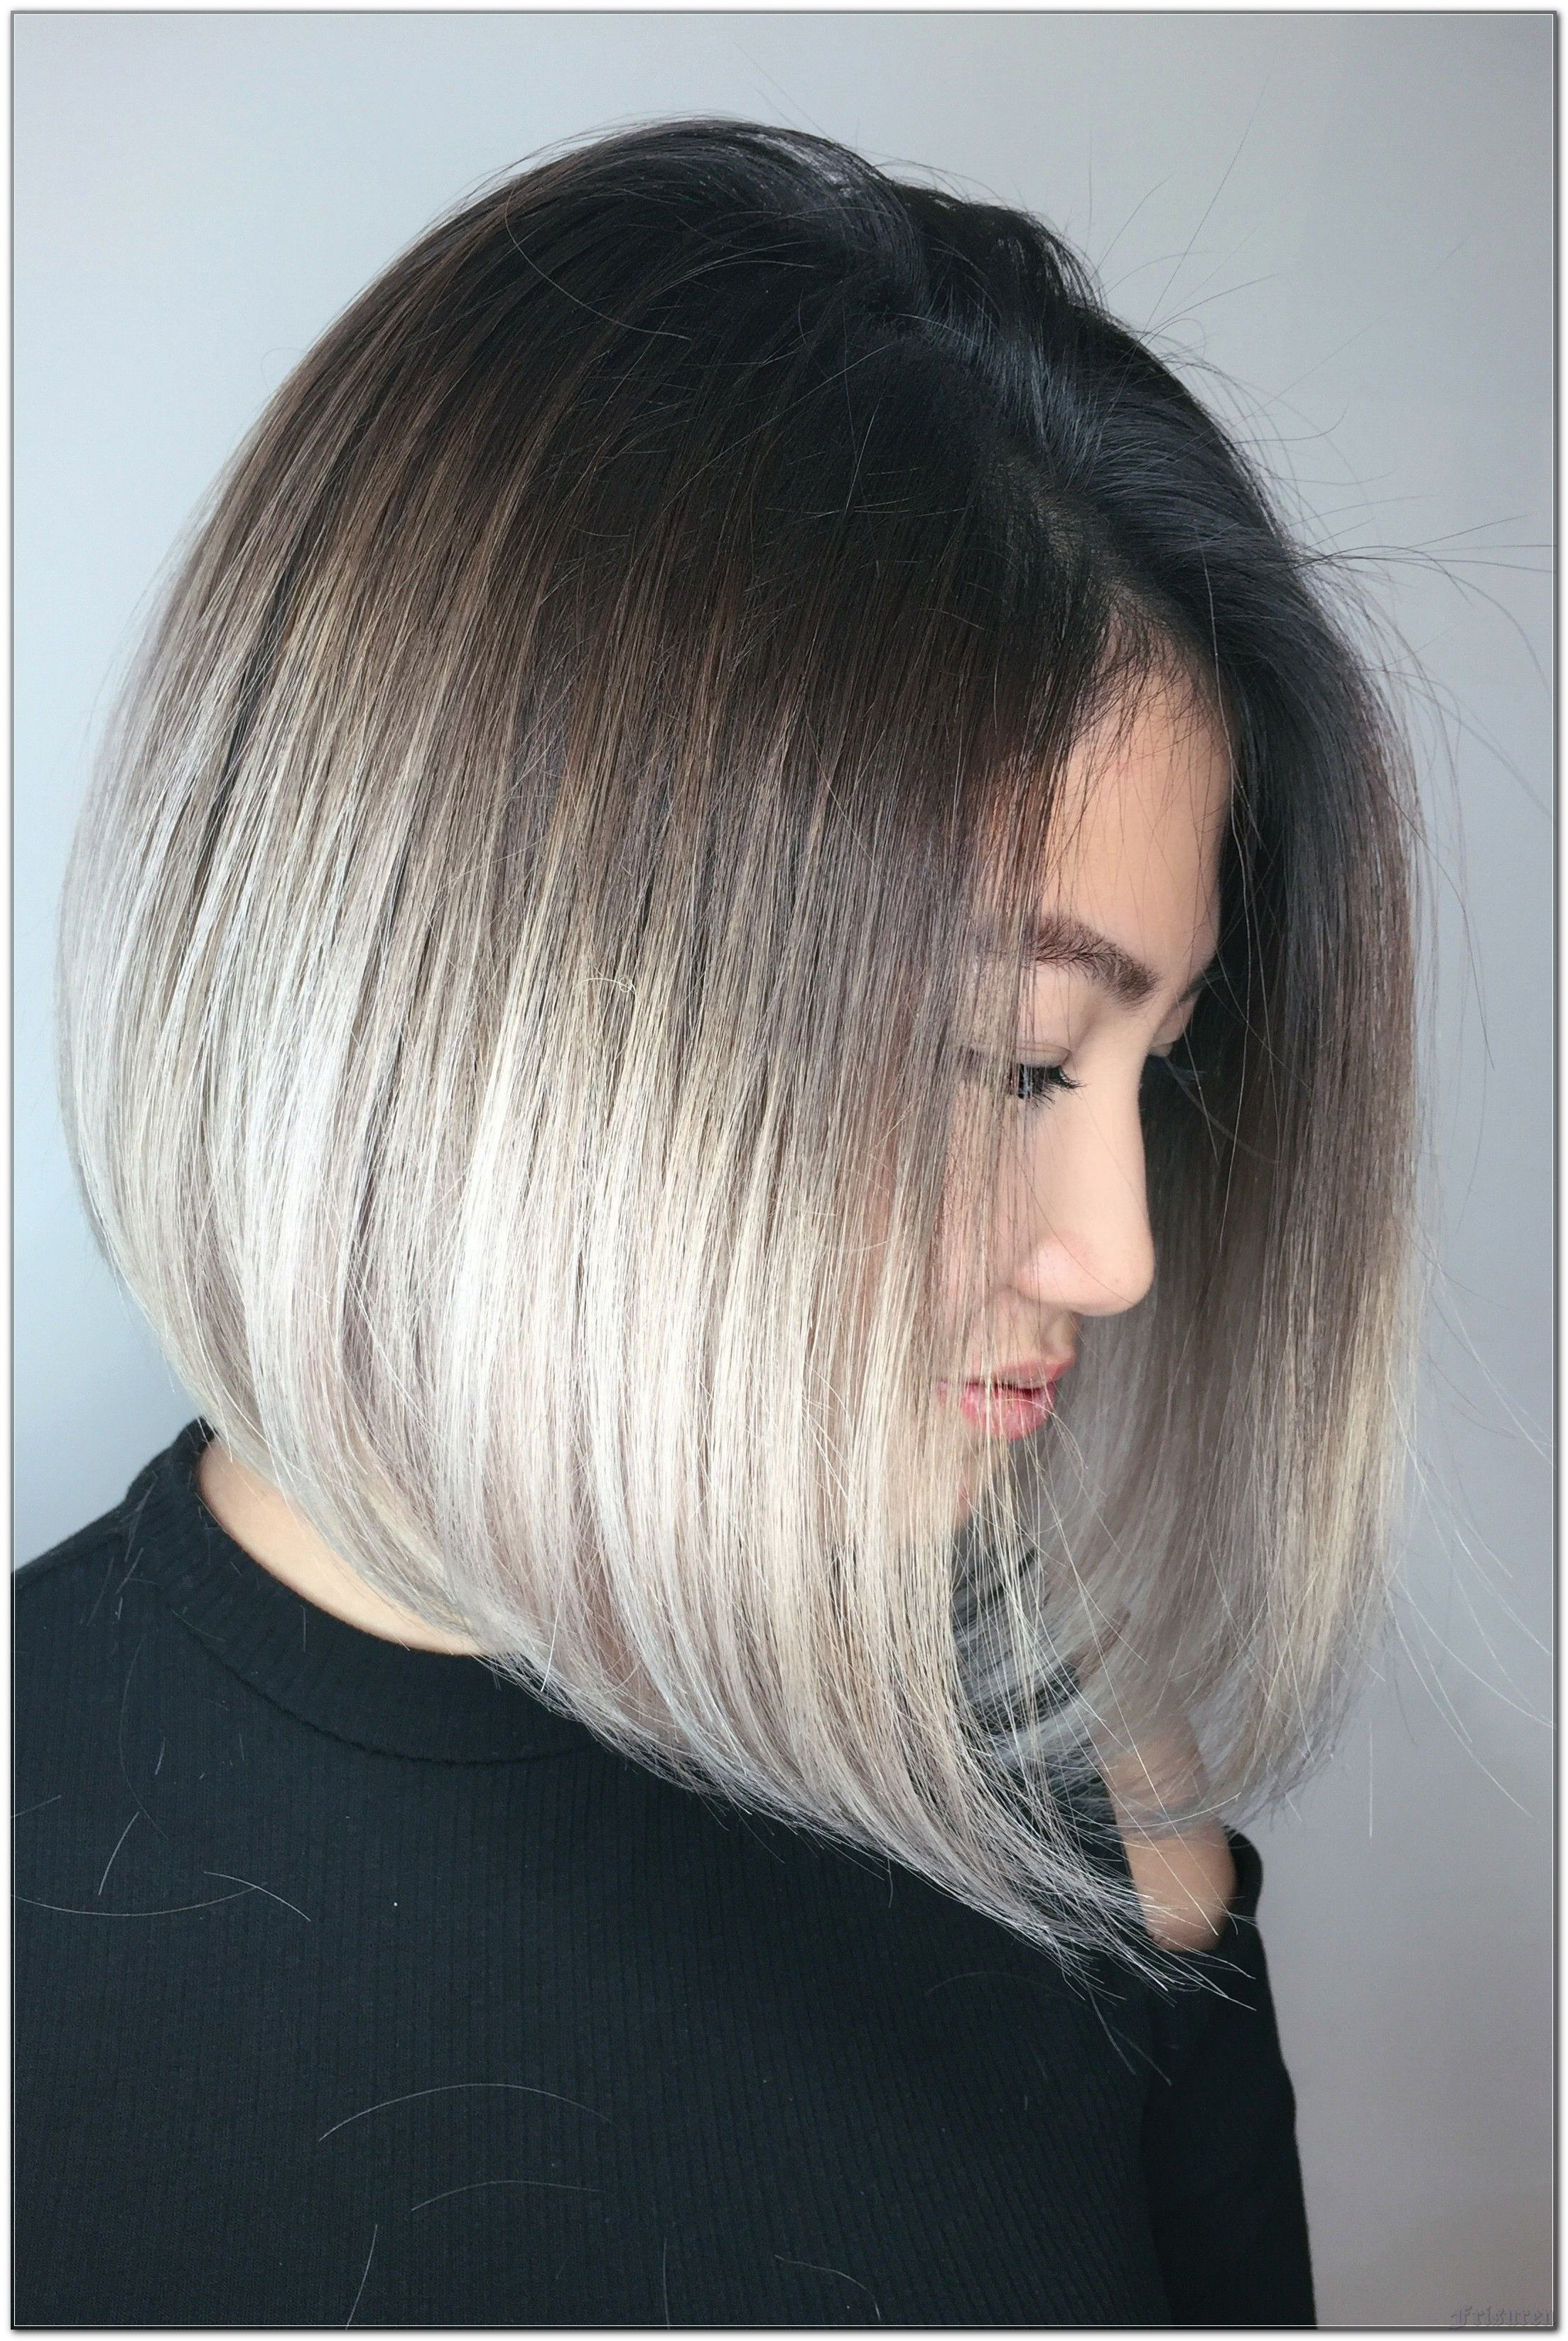 Frisuren Shortcuts – The Easy Way for 2021